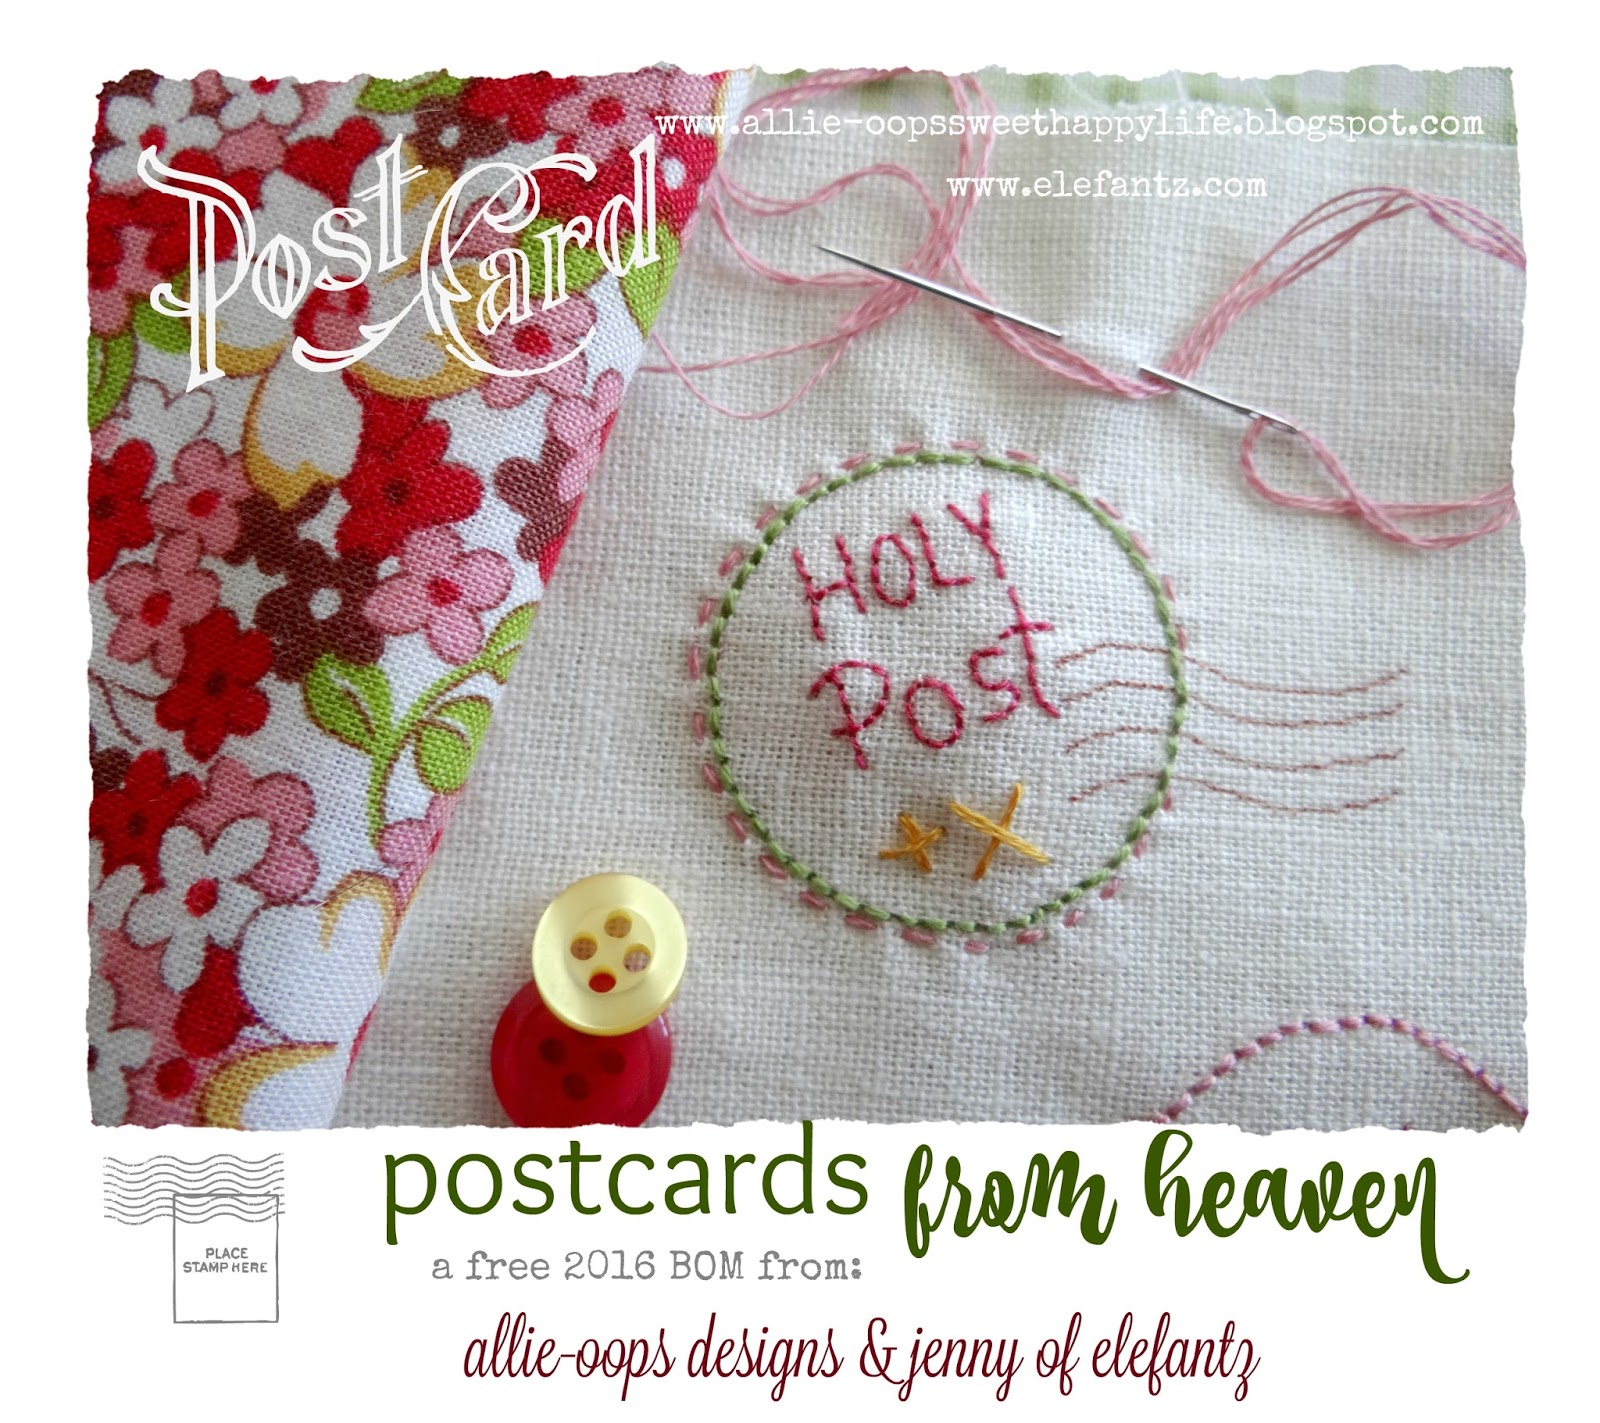 Stitchery Post Cards